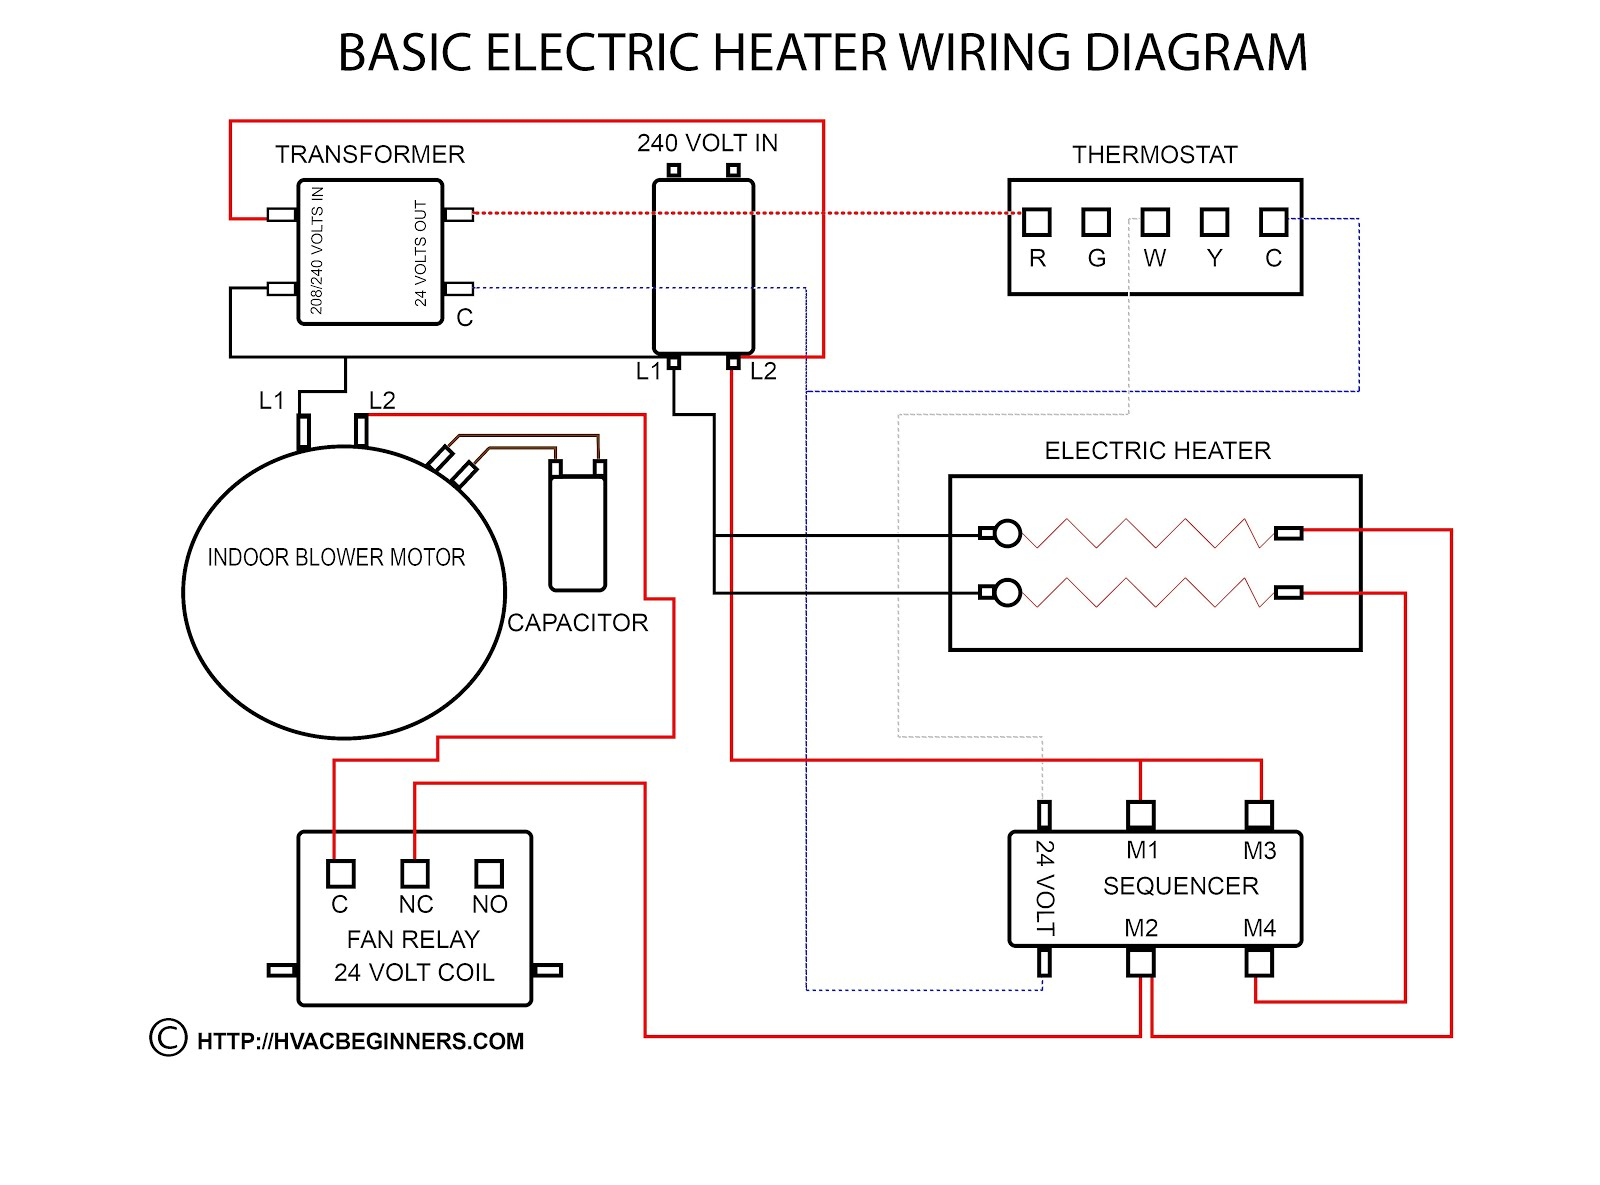 Master Electronics Repair !: HVAC THERMOSTAT WIRING DIAGRAM WIRING -DIAGRAM-FOR-RHEEM-GAS-FURNACE | Basic Wiring For Gas Furnace |  | Master Electronics Repair ! - blogger